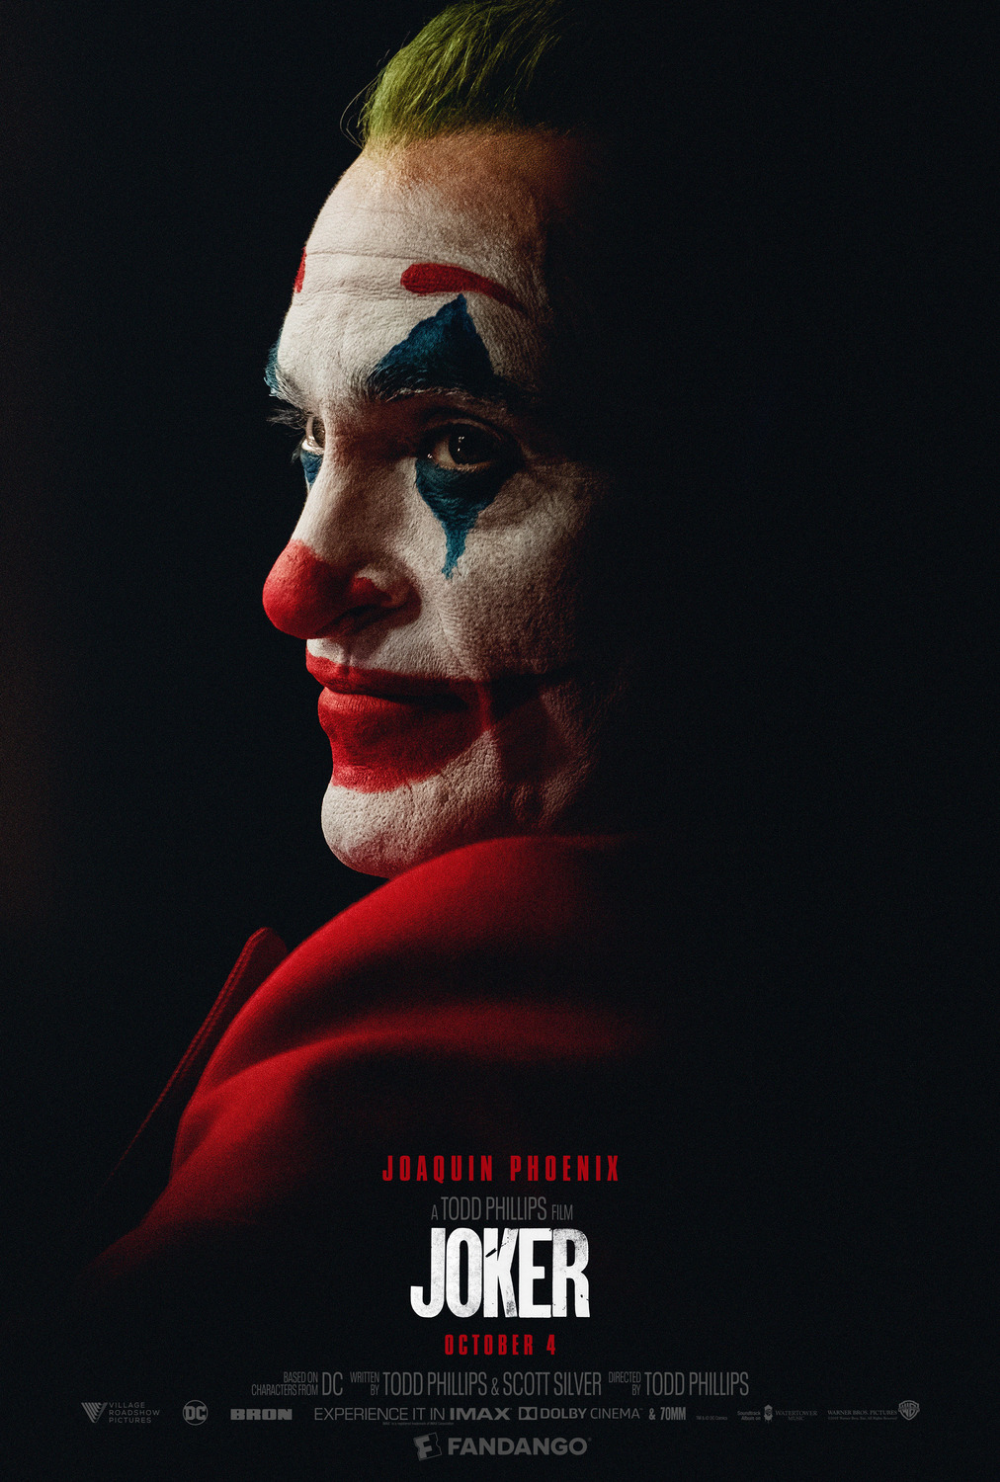 Return to the main poster page for Joker (9 of 10) (With